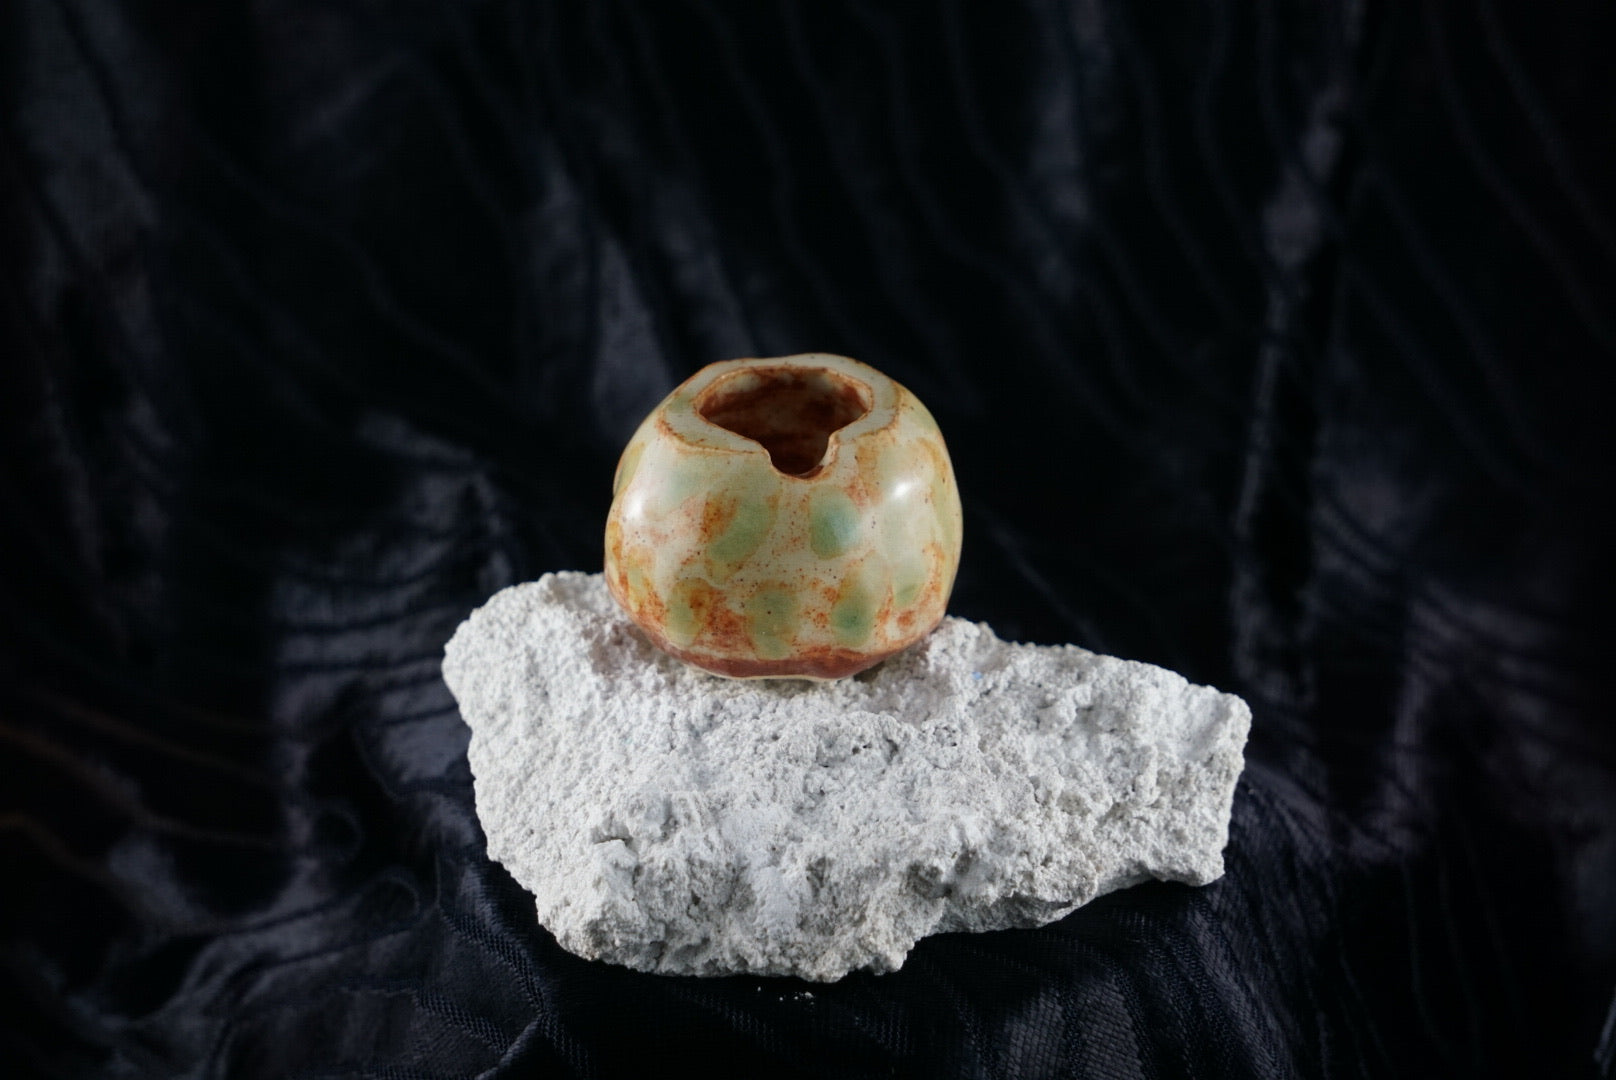 Small, handmade, orange/brown and green ceramic ashtray molded around a piece of white rock.